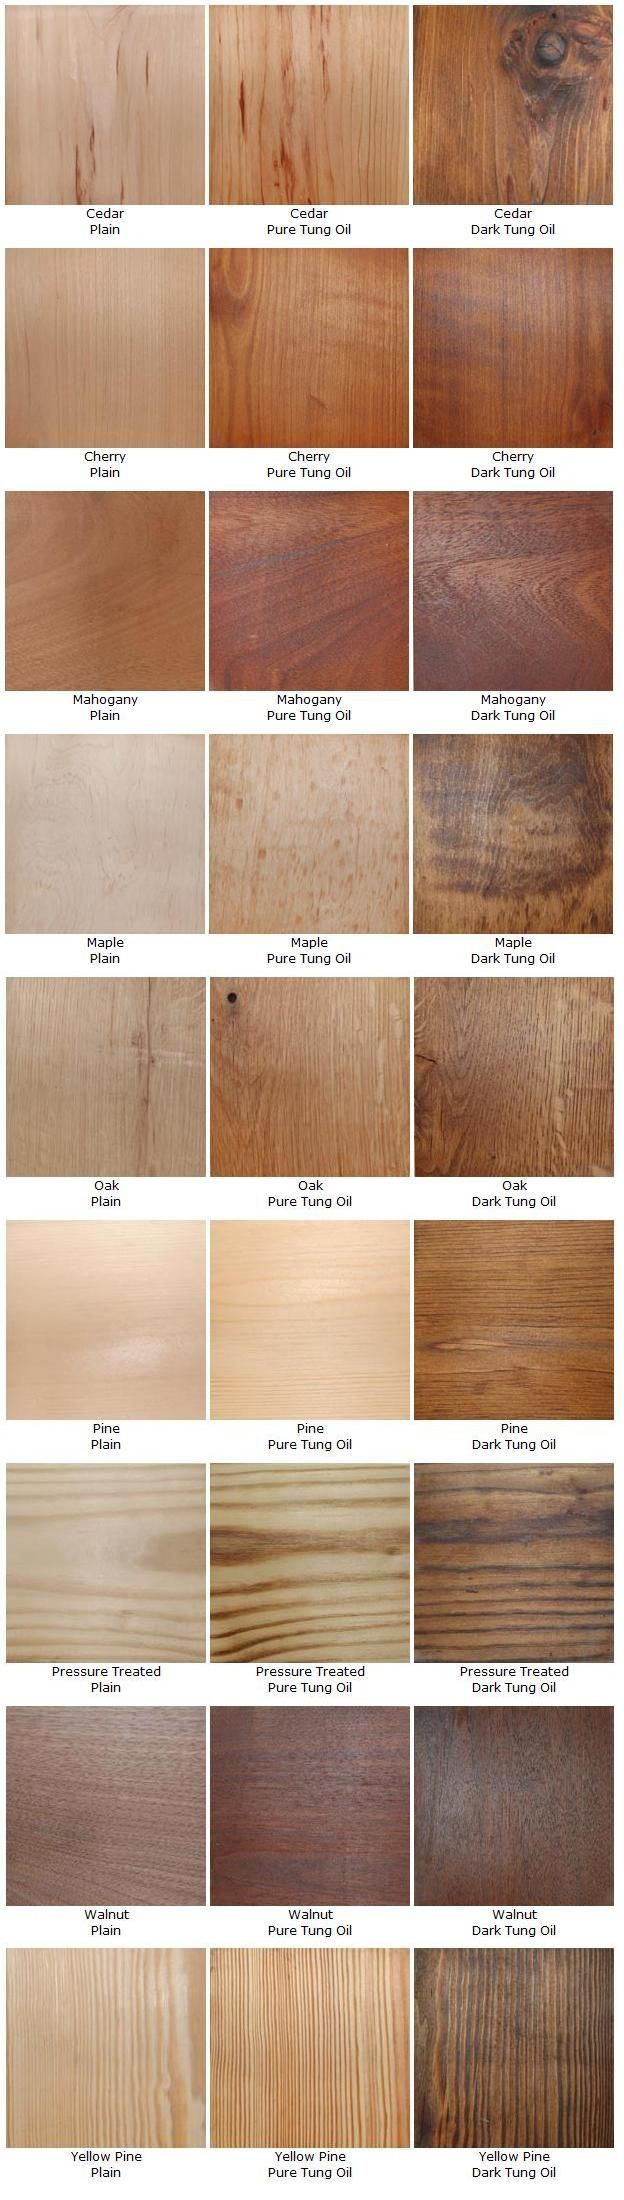 pure vs dark tung oil diy and home decor types of wood woodworking wood. Black Bedroom Furniture Sets. Home Design Ideas